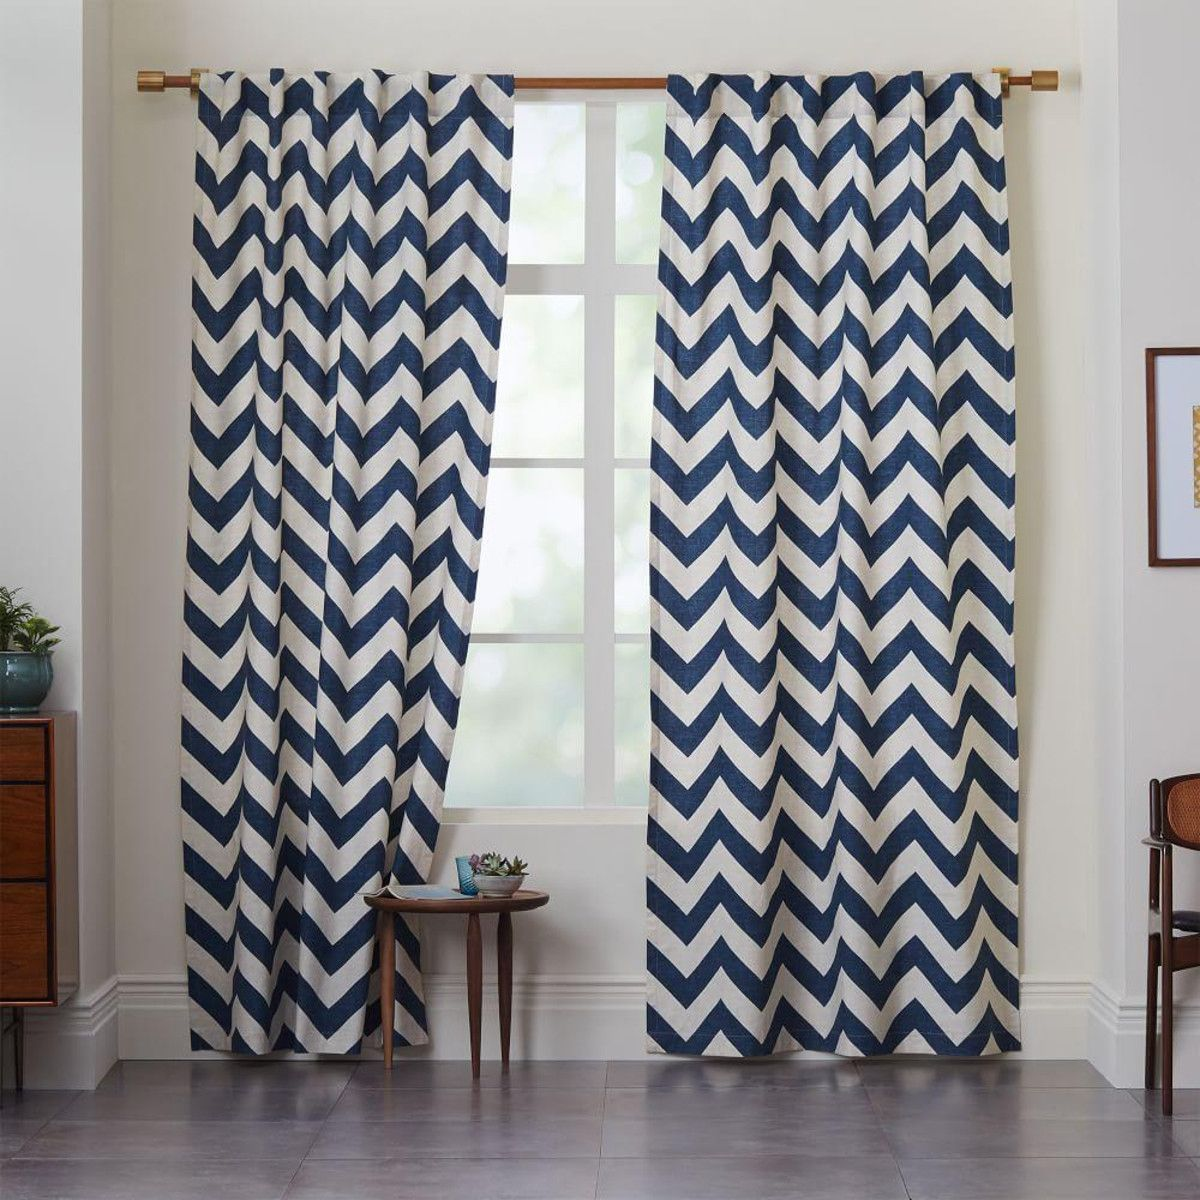 West Elm Chevron Curtains In Blue Lagoon Pink Bedroom Decor Home Decor Canvas Curtains